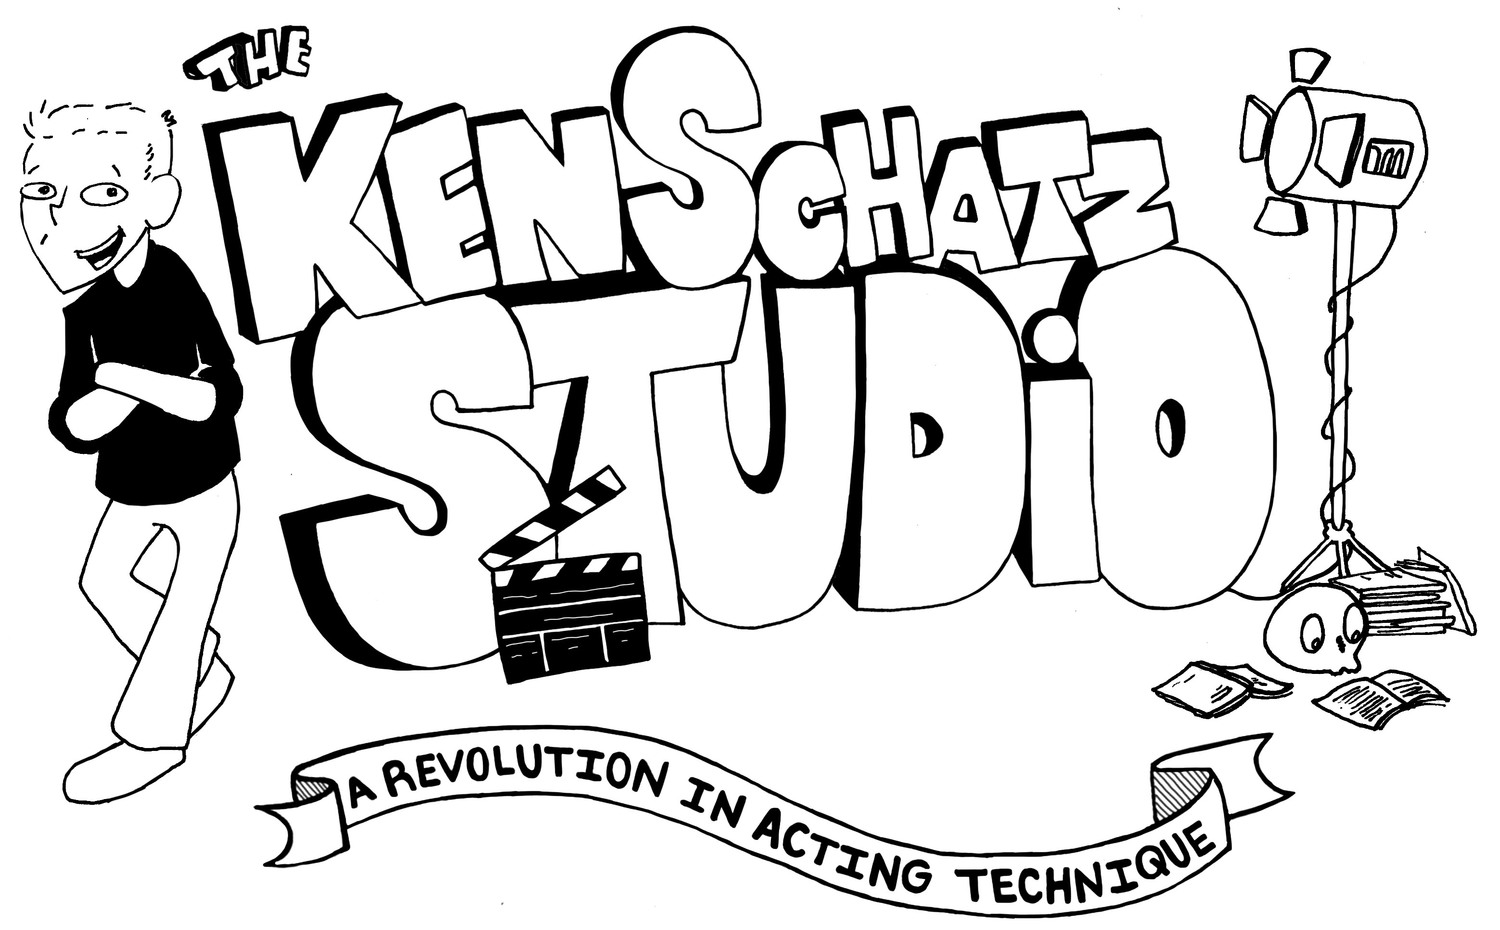 The Ken Schatz Studio